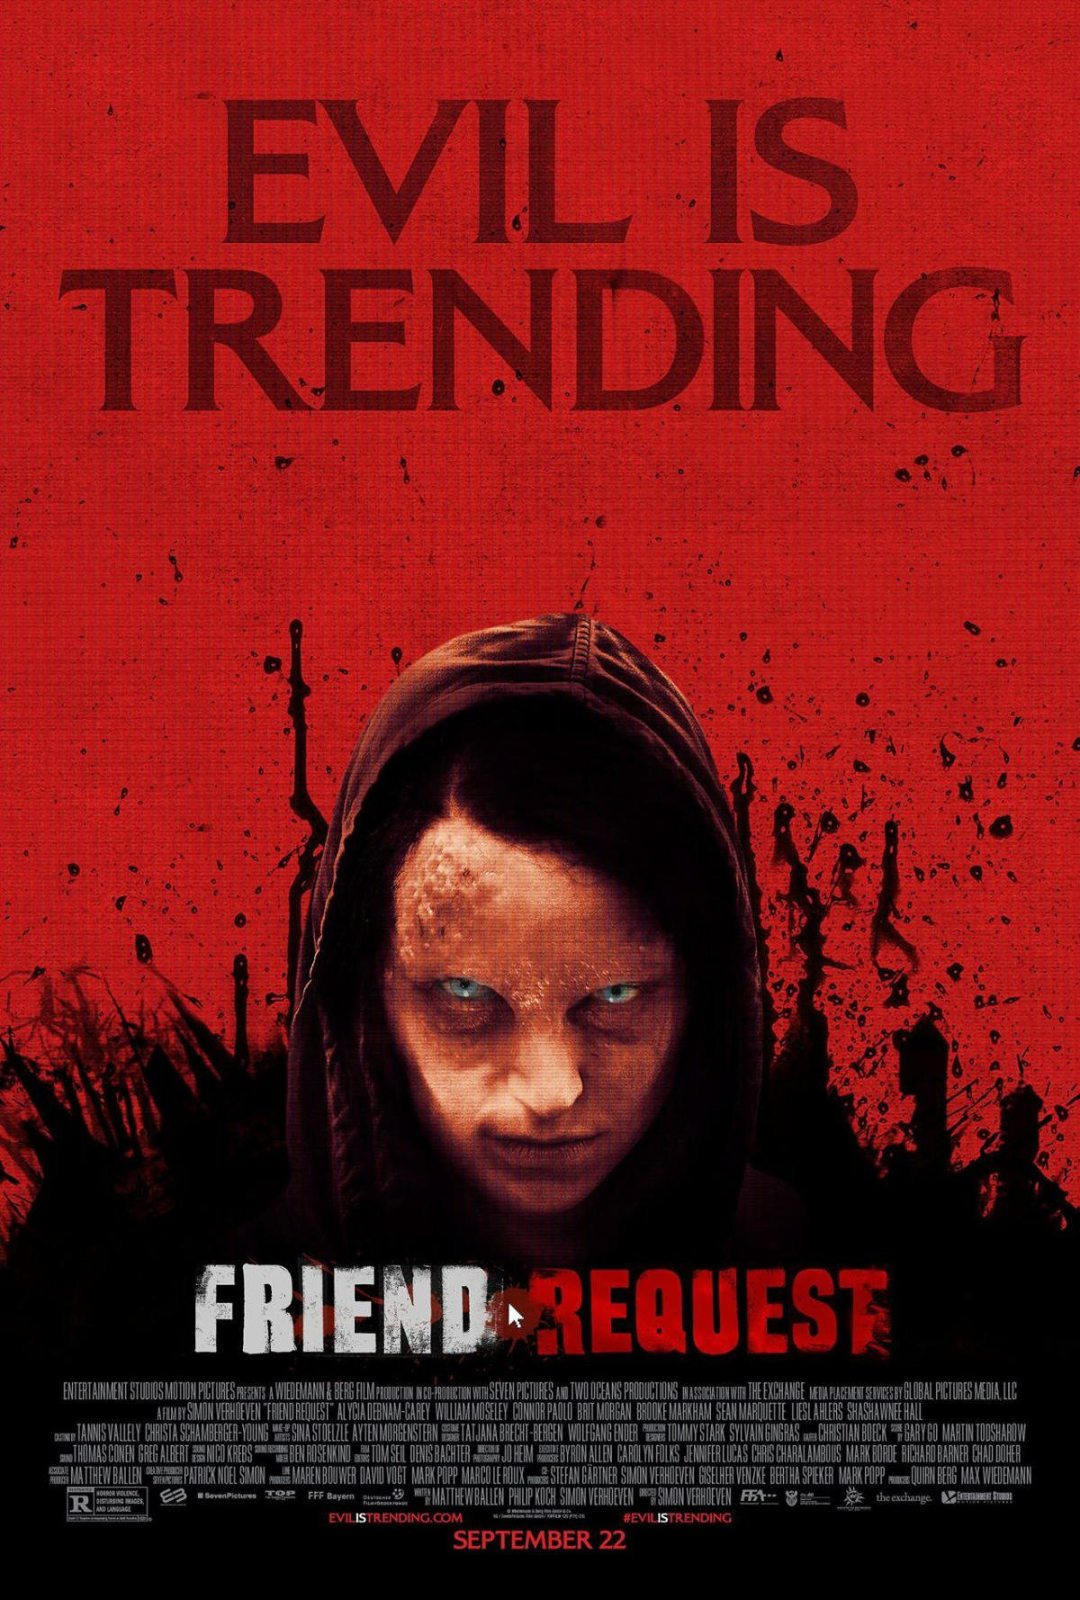 After This Trailer You Might Want to Rethink That Latest 'Friend Request!'